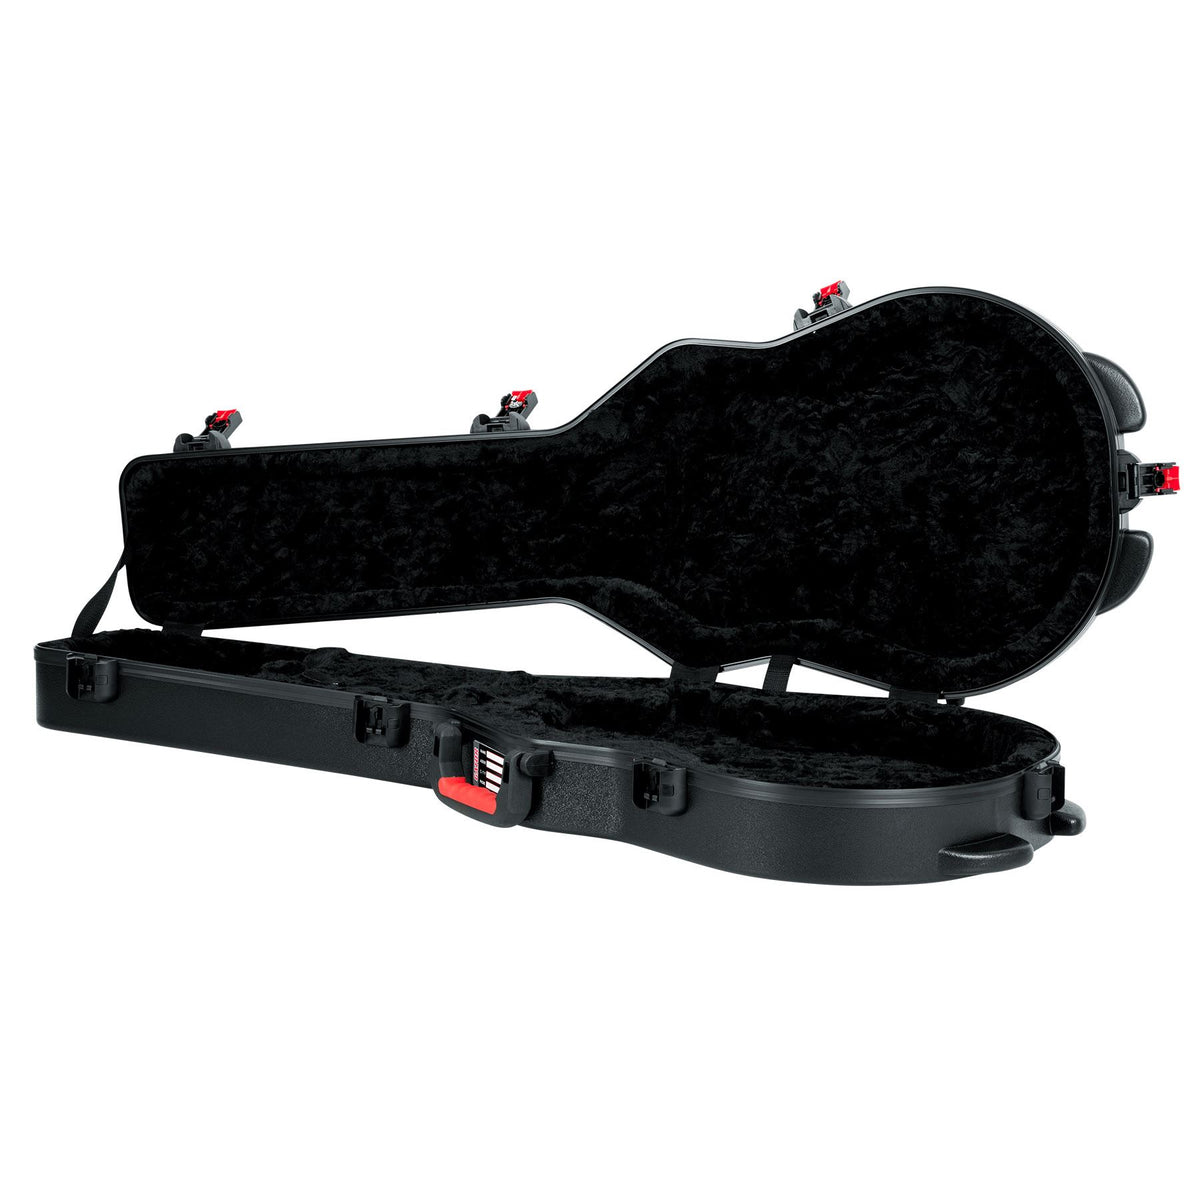 Gator GTSA-GTRLPS TSA Series ATA Molded Polyethylene Guitar Case for Gibson Les Paul and Single Cutaway Electric Guitars